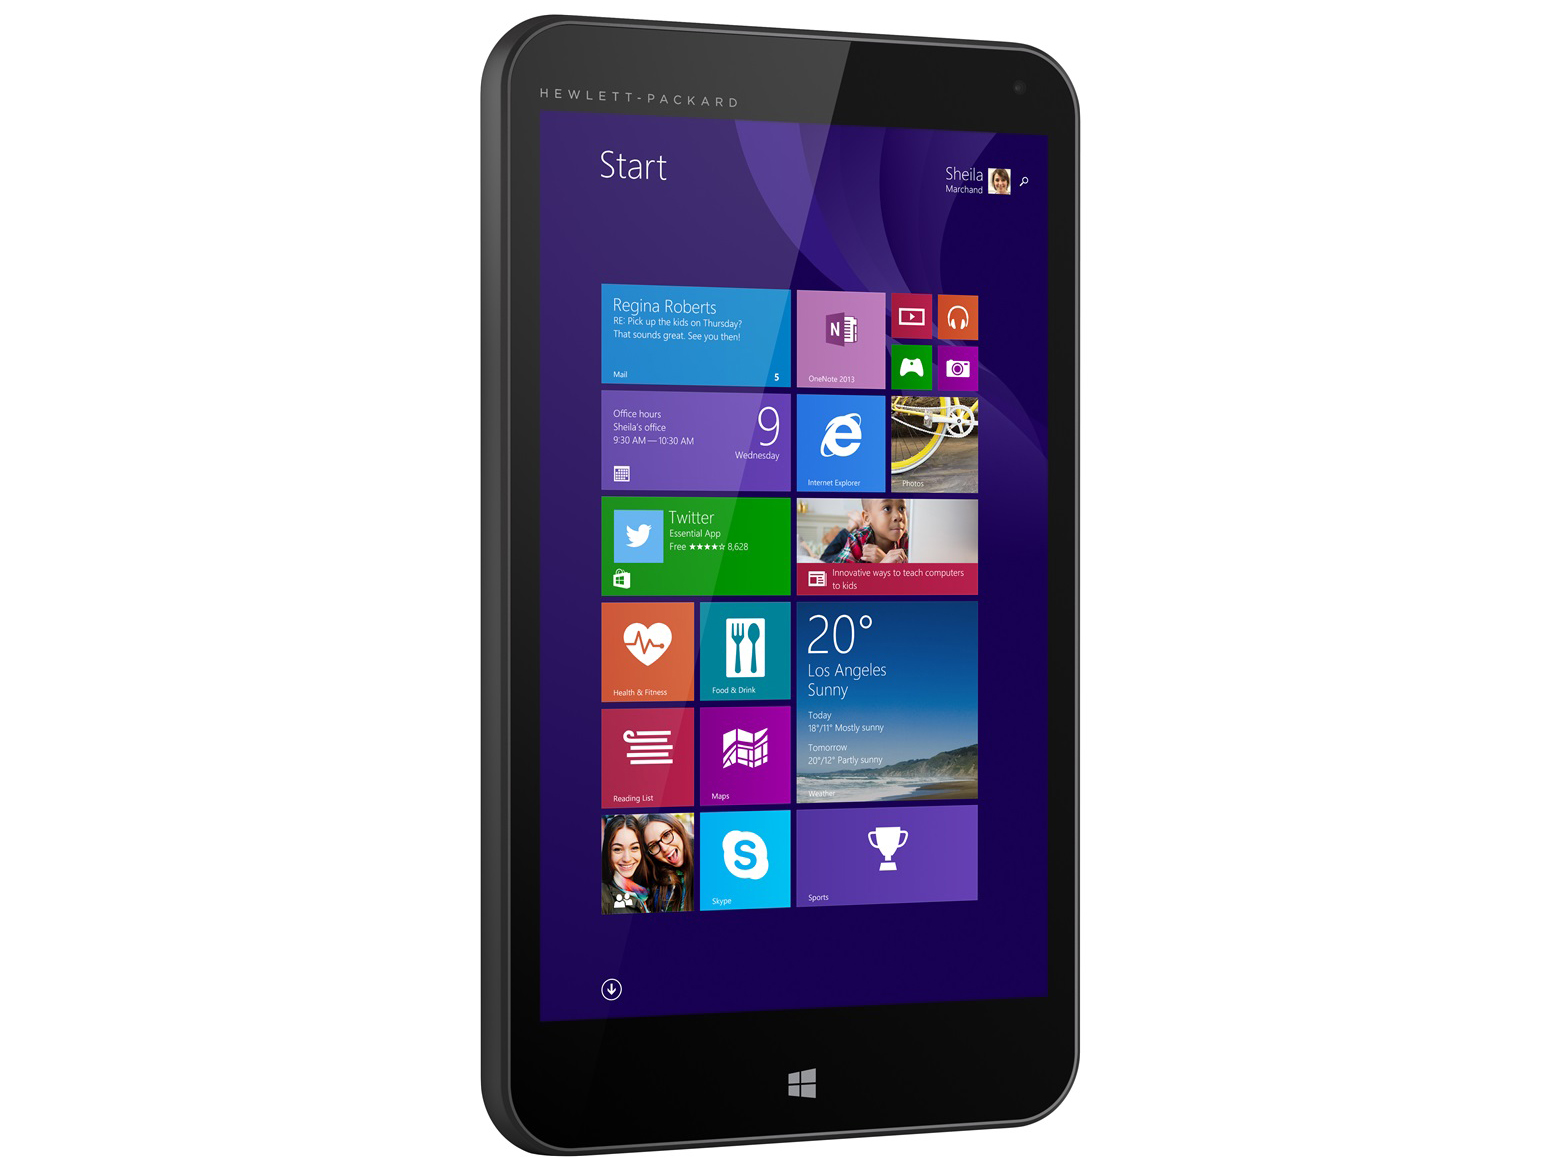 HP Stream 7 5700ng Tablet Review - NotebookCheck.net Reviews